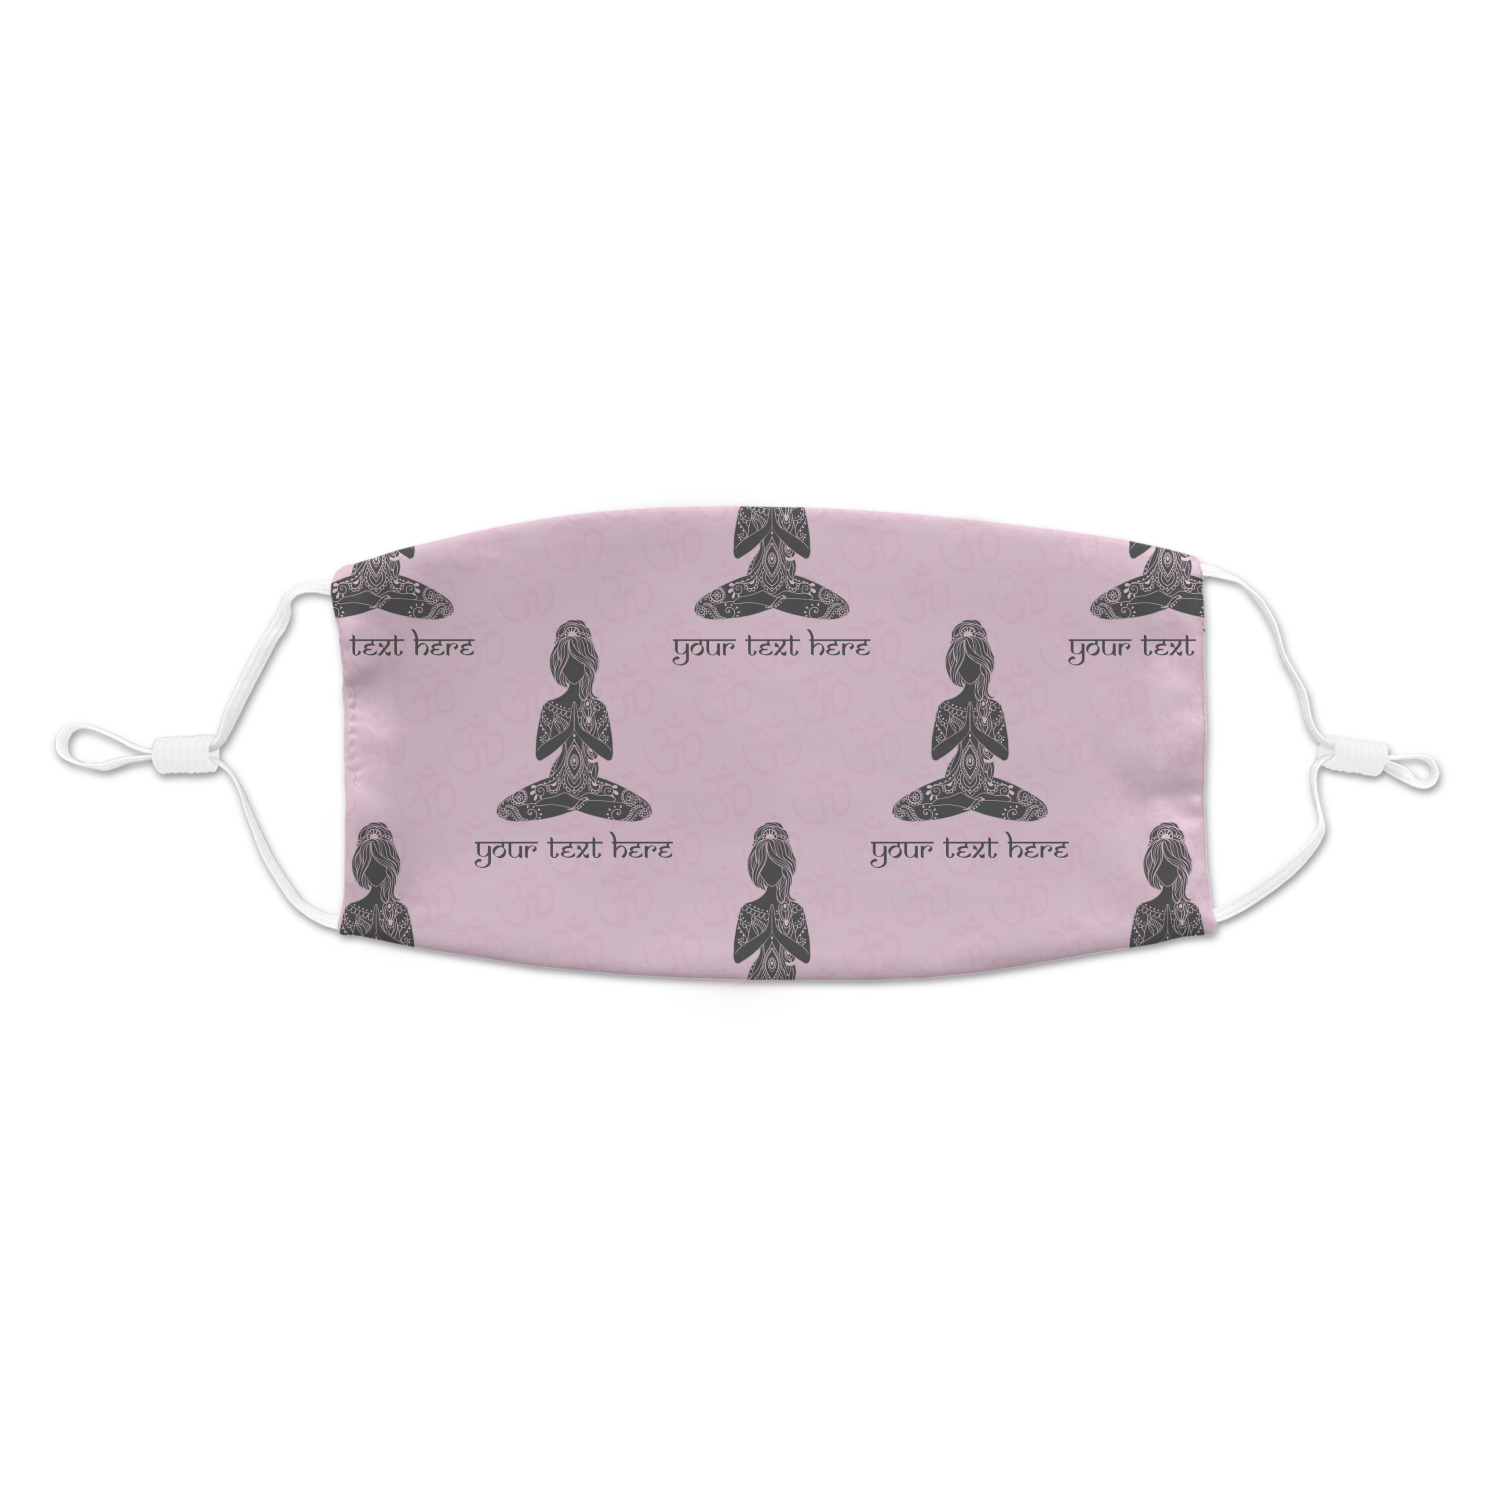 Lotus Pose Kid's Cloth Face Mask - Standard (Personalized ...